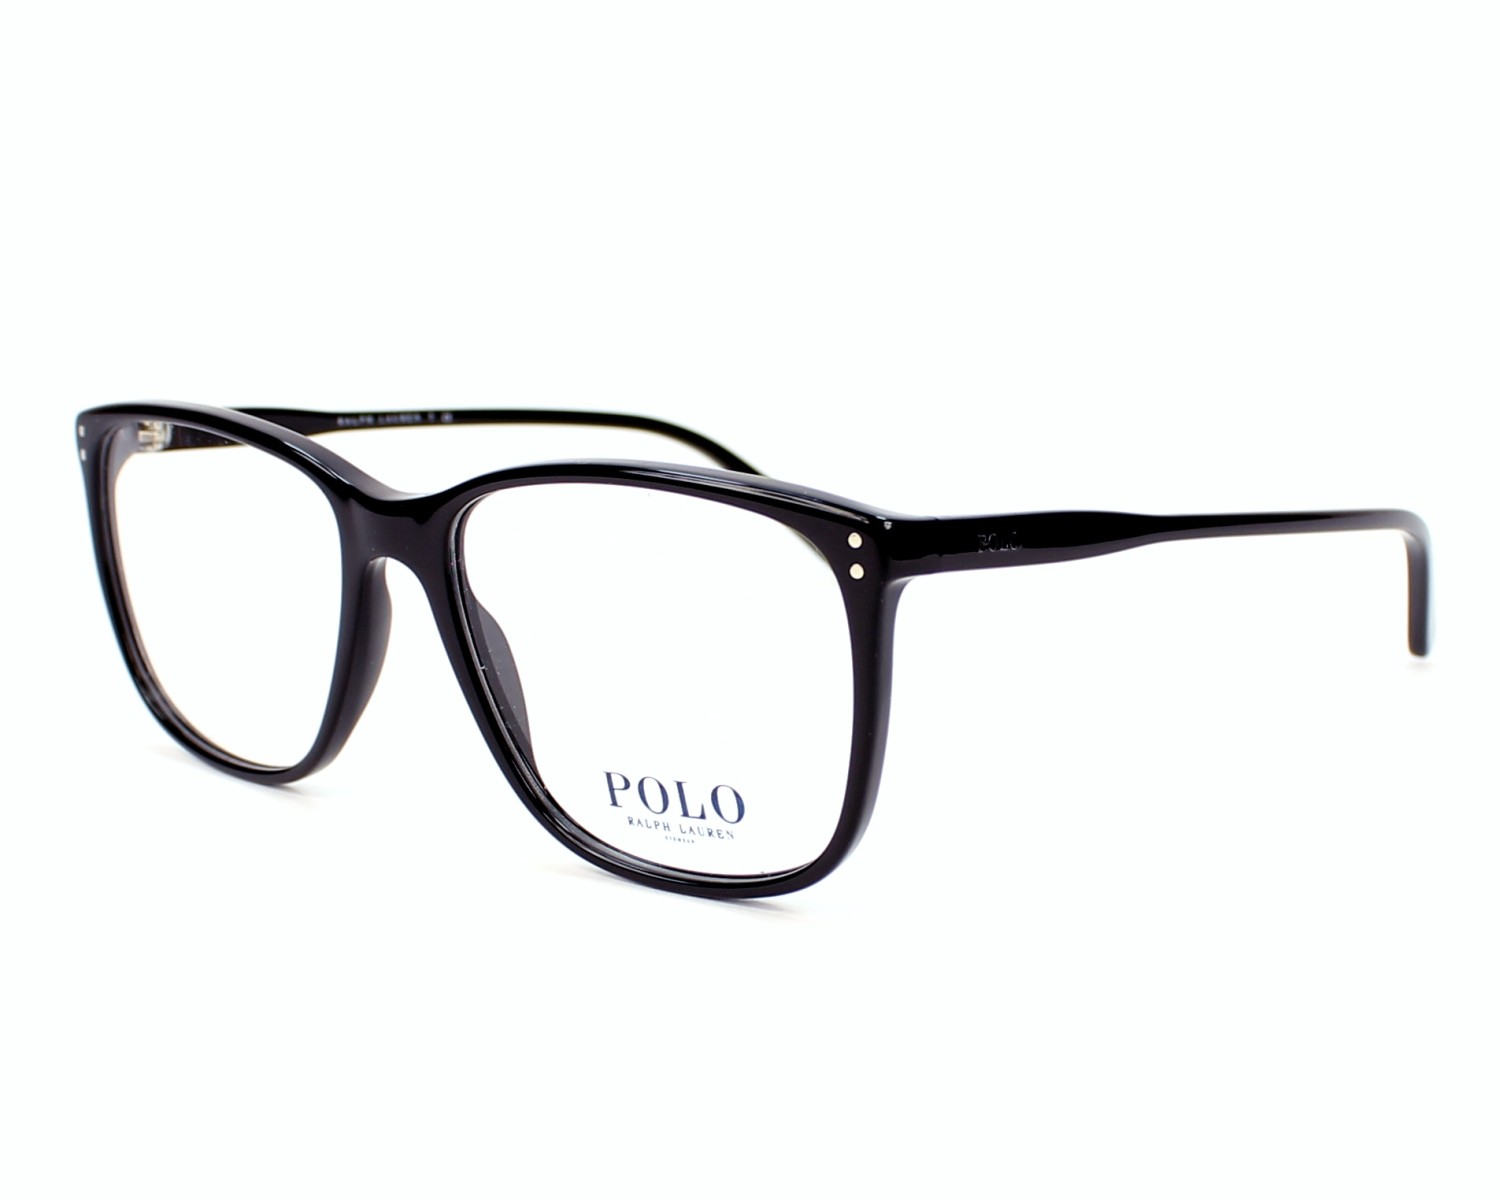 kaufen sie ihre polo ralph lauren brille ph 2138 5001. Black Bedroom Furniture Sets. Home Design Ideas